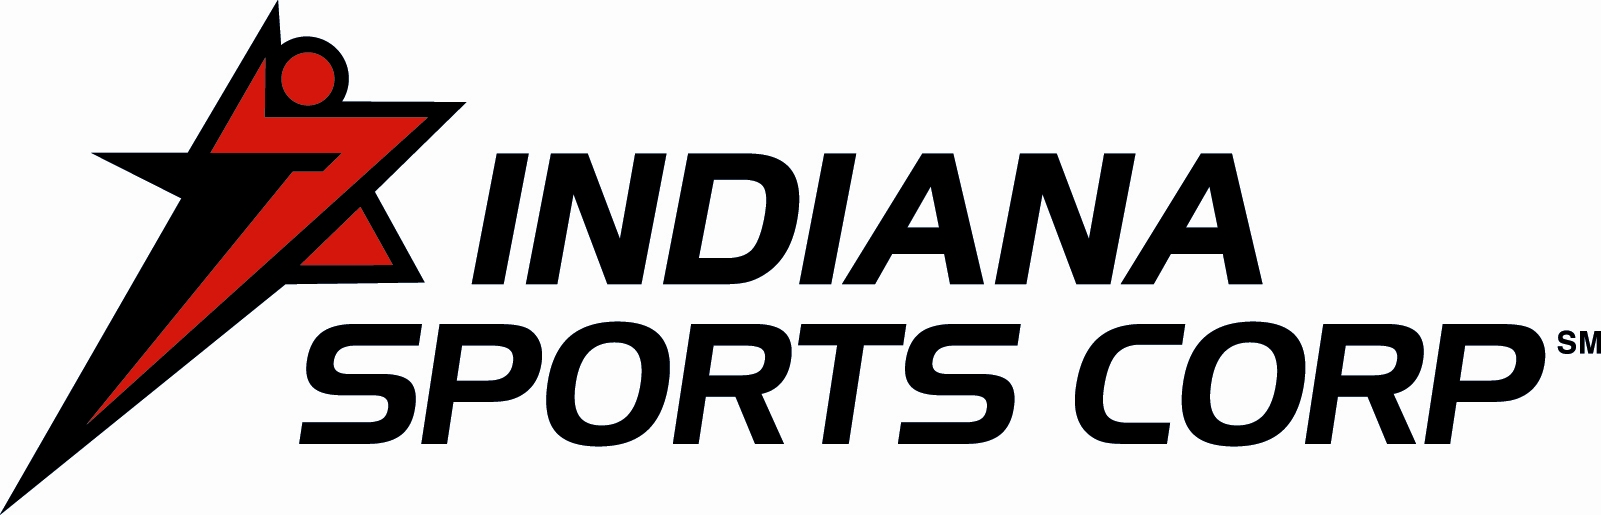 indiana-sports-corp